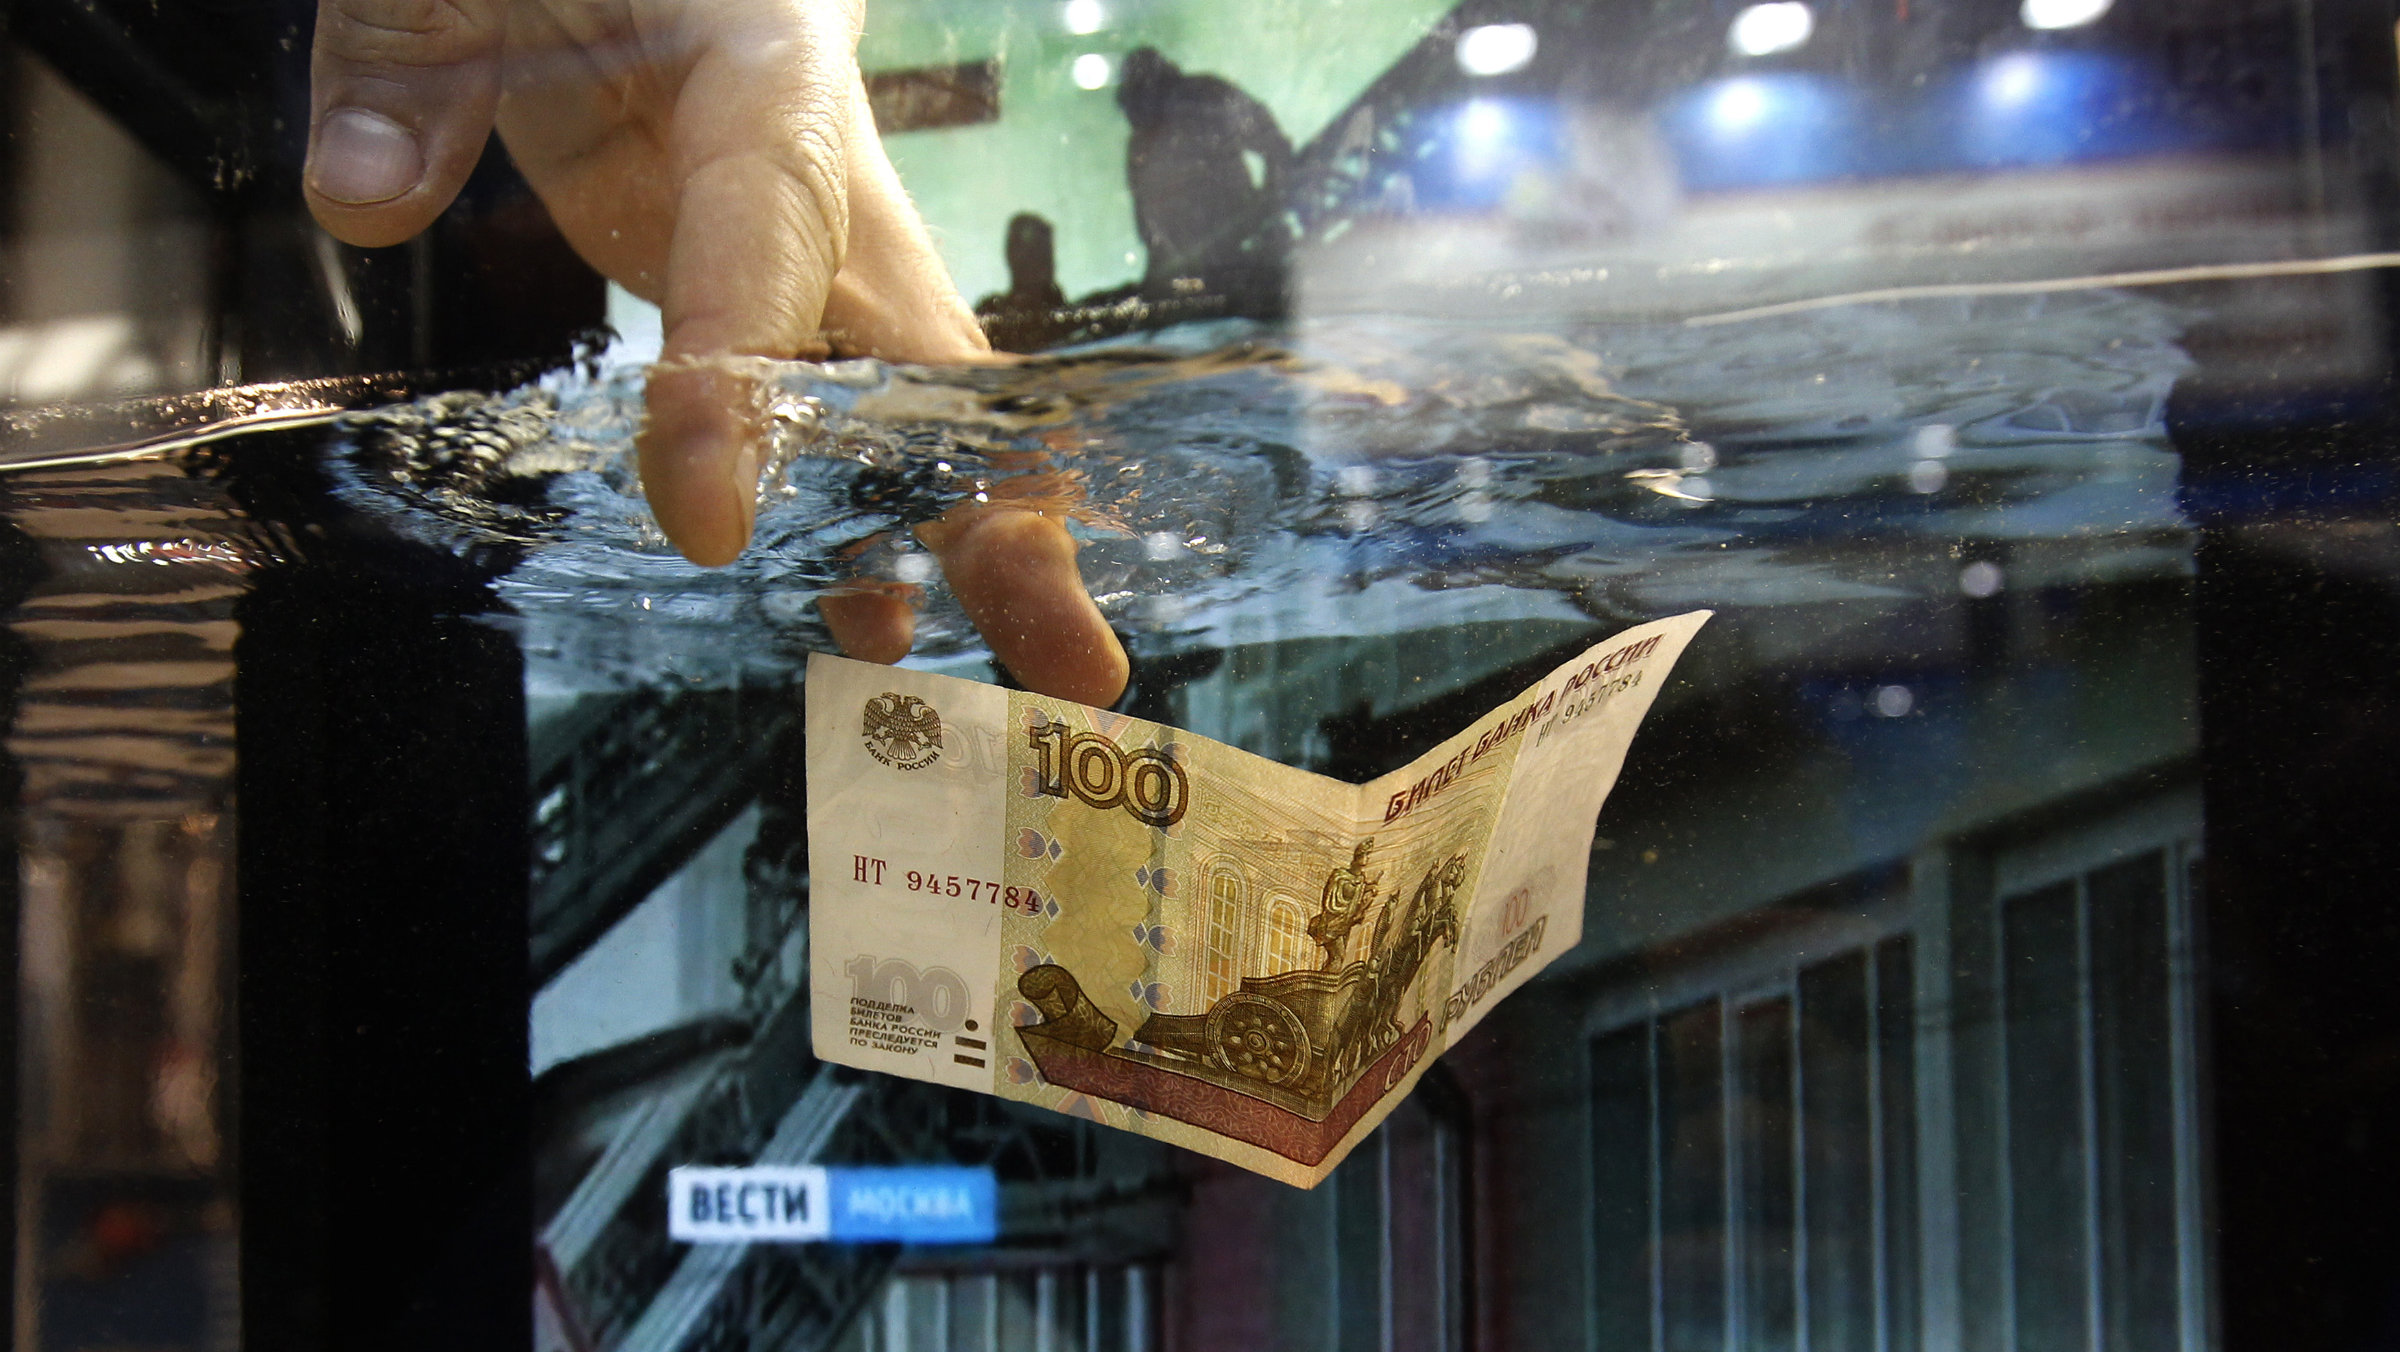 A 3M Co company representative sinks a 100 rouble banknote in a container of fire suppression fluid during a presentation at the Security and Safety International Forum in St. Petersburg.